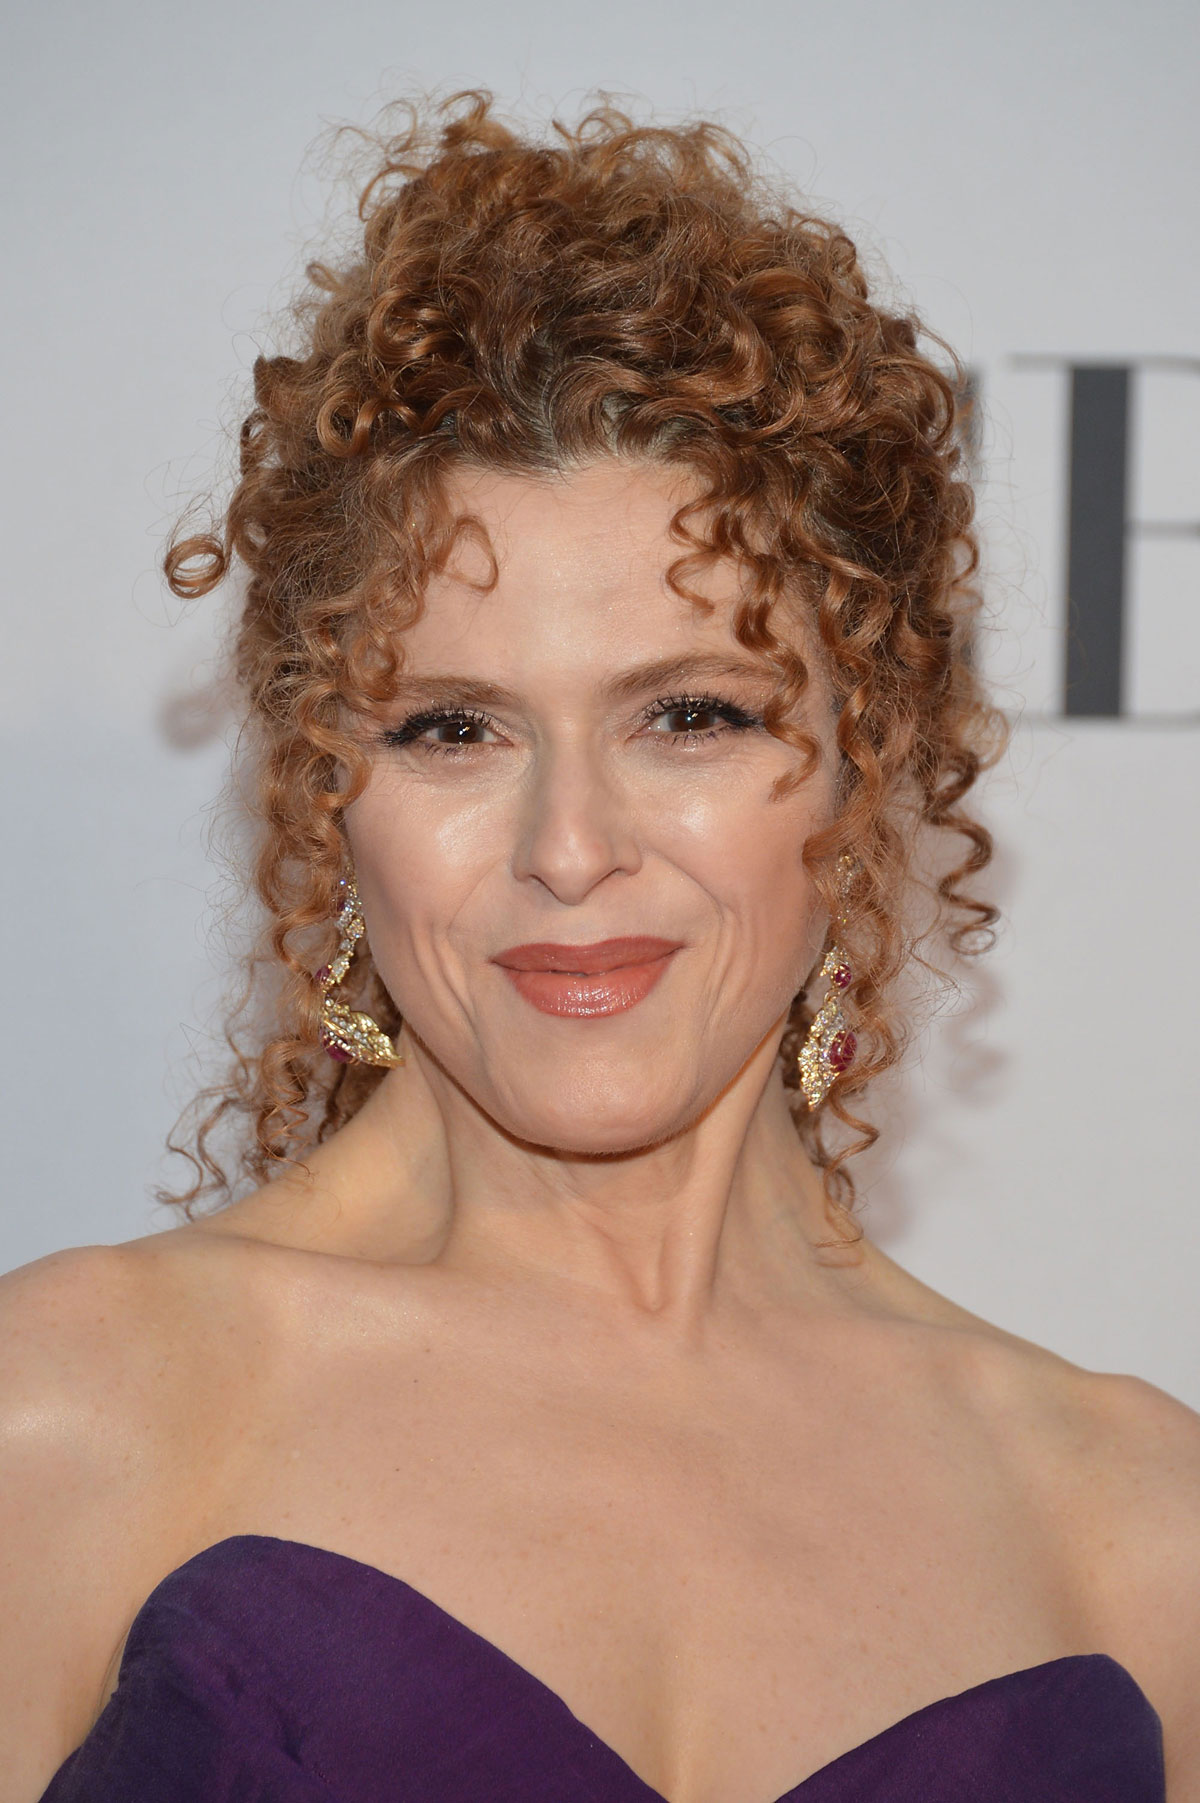 bernadette peters curly hair